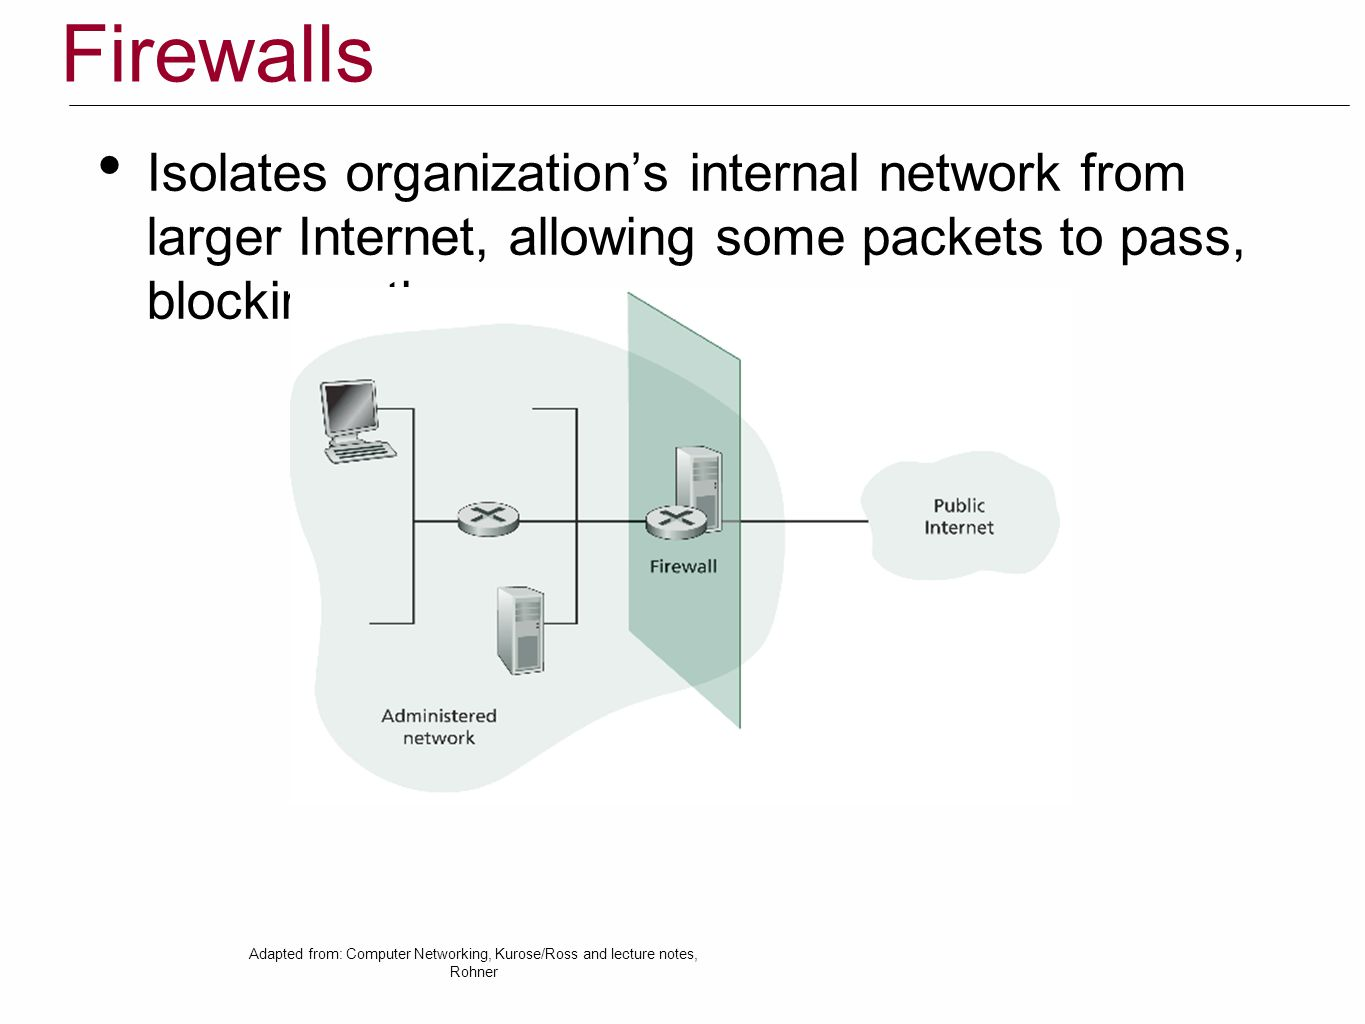 Firewalls Isolates organization's internal network from larger Internet, allowing some packets to pass, blocking others Adapted from: Computer Networking, Kurose/Ross and lecture notes, Rohner